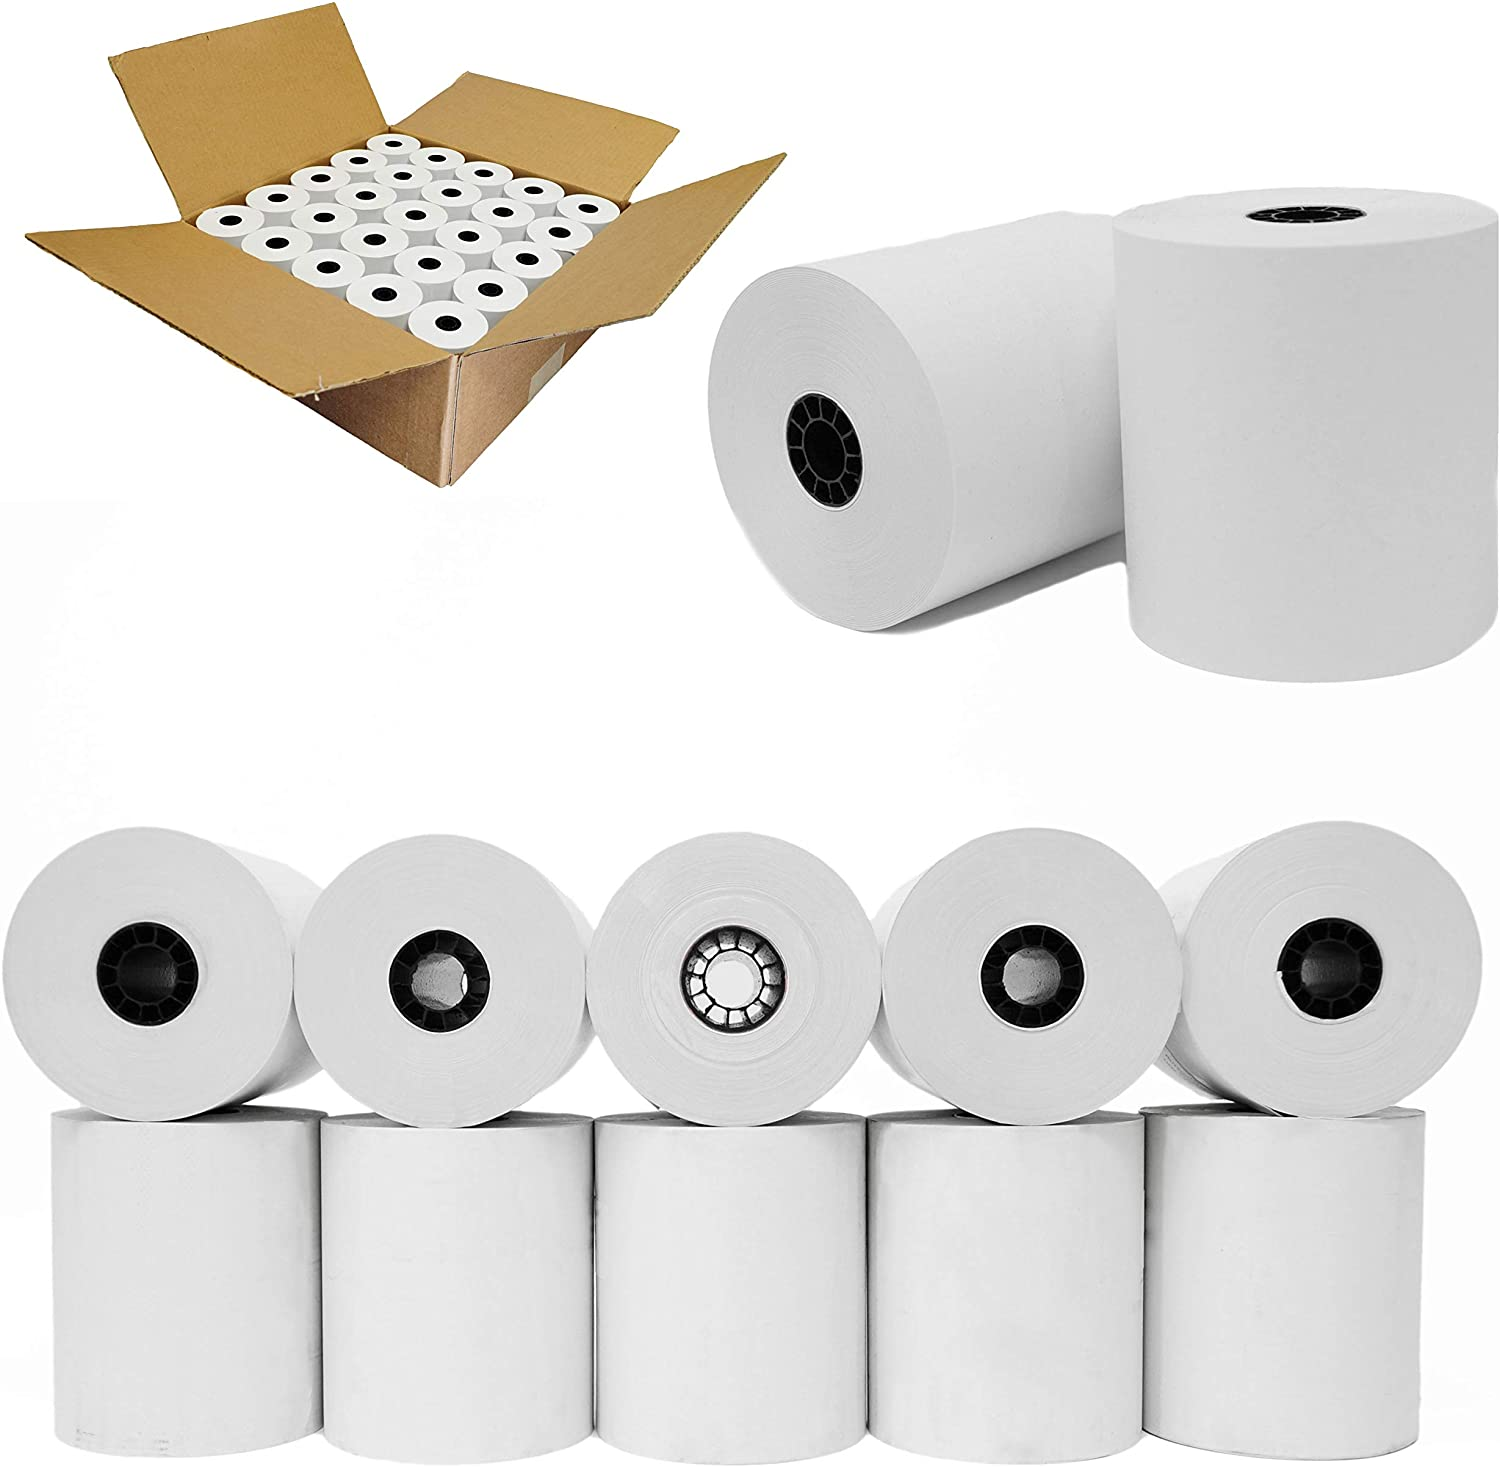 3 1 8 5 ☆ popular x 200 thermal paper roll discount Star pack Micronics with 50 works